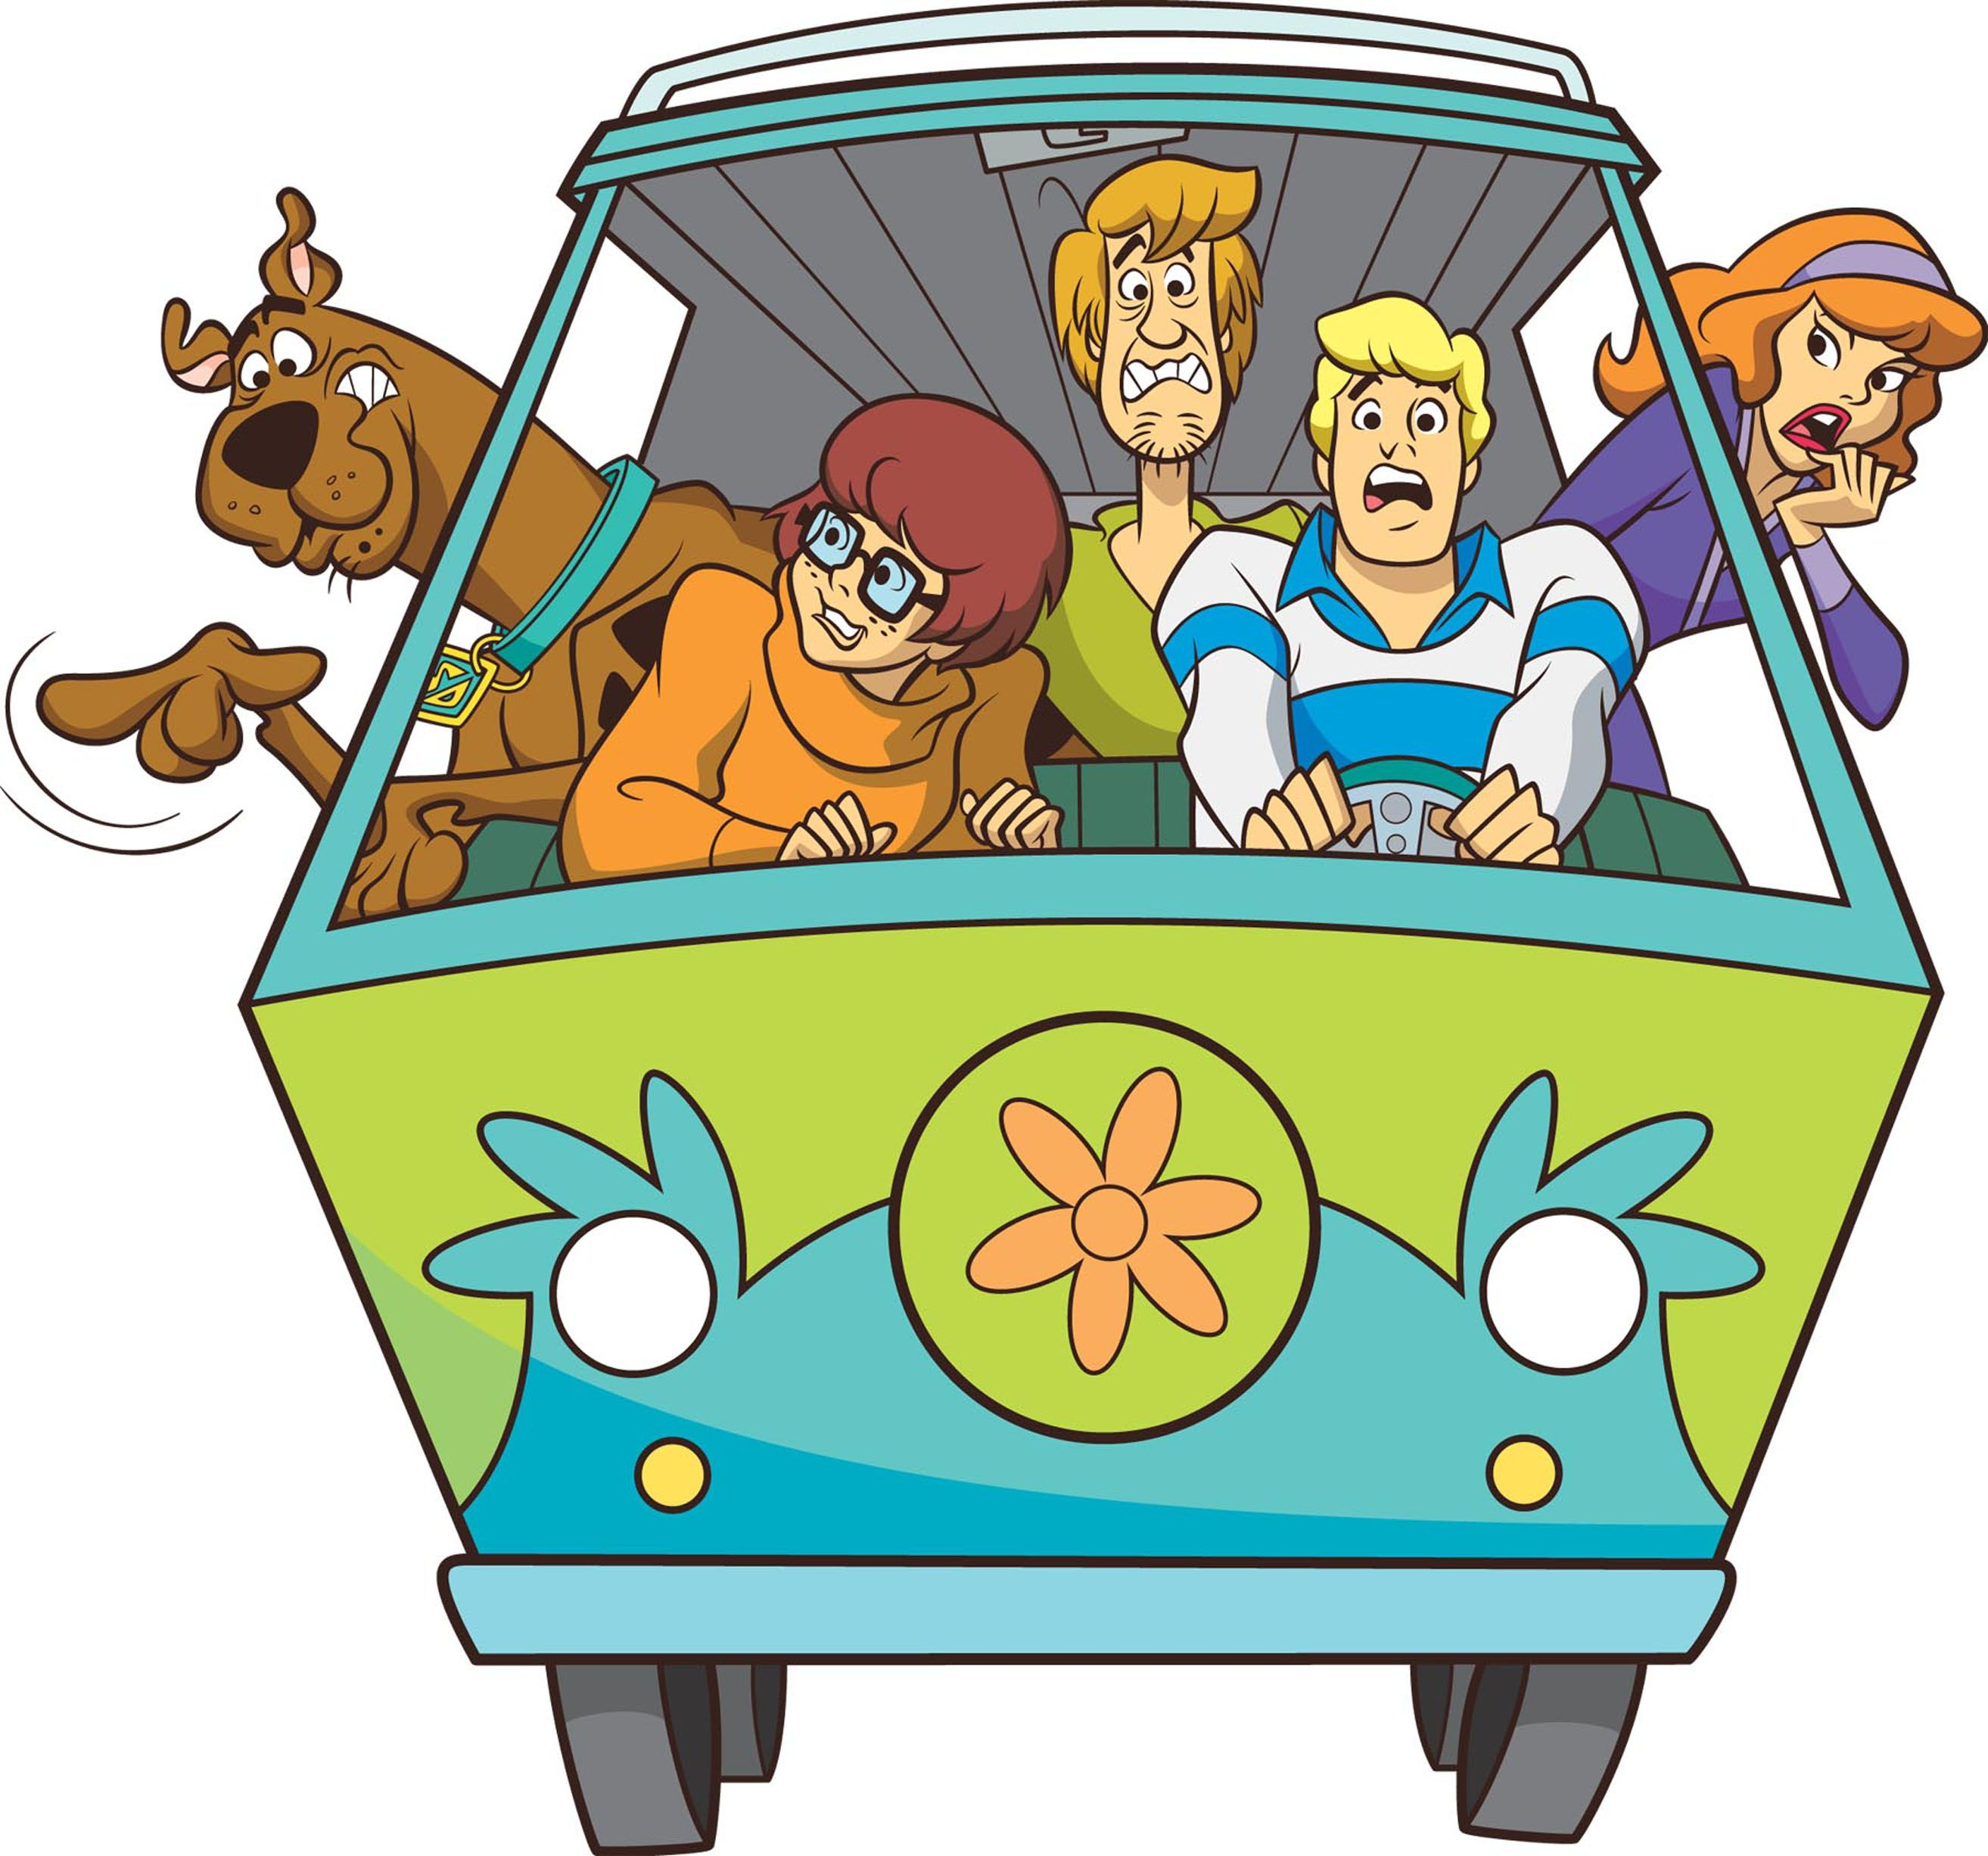 A new scooby doo live action movie is on the way back in - Scooby doo voiture ...